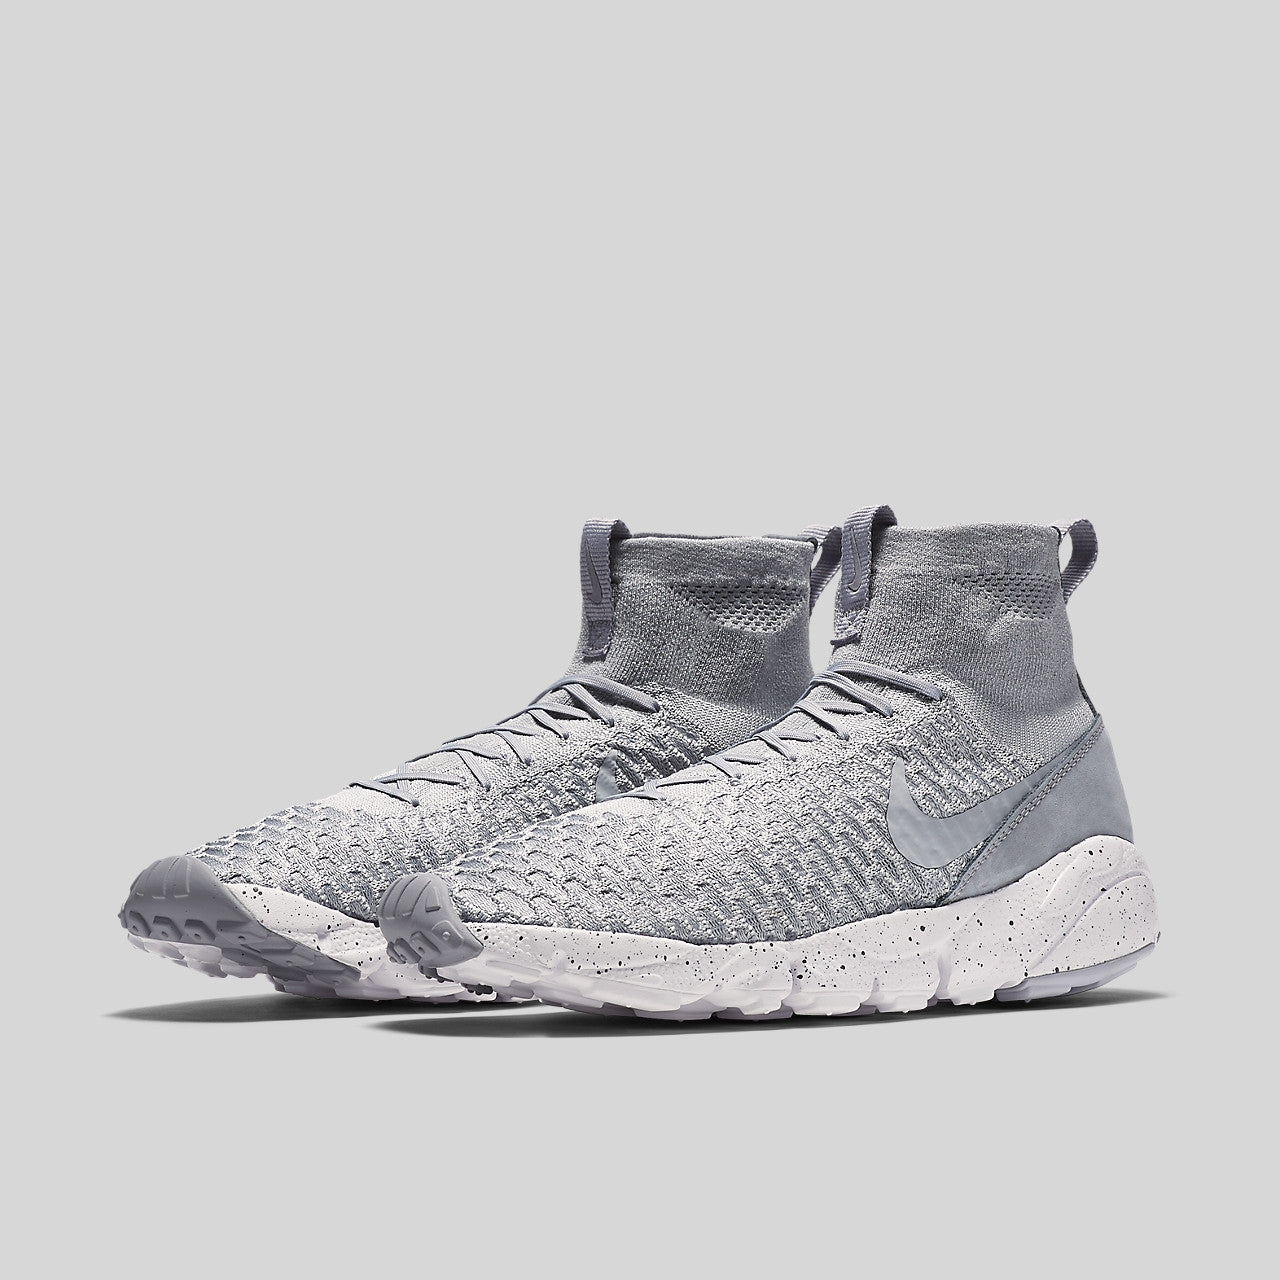 7a3161c9ea9363 Nike Air Footscape Magista Flyknit Wolf Grey Cool Grey White. Item Number   816560-005